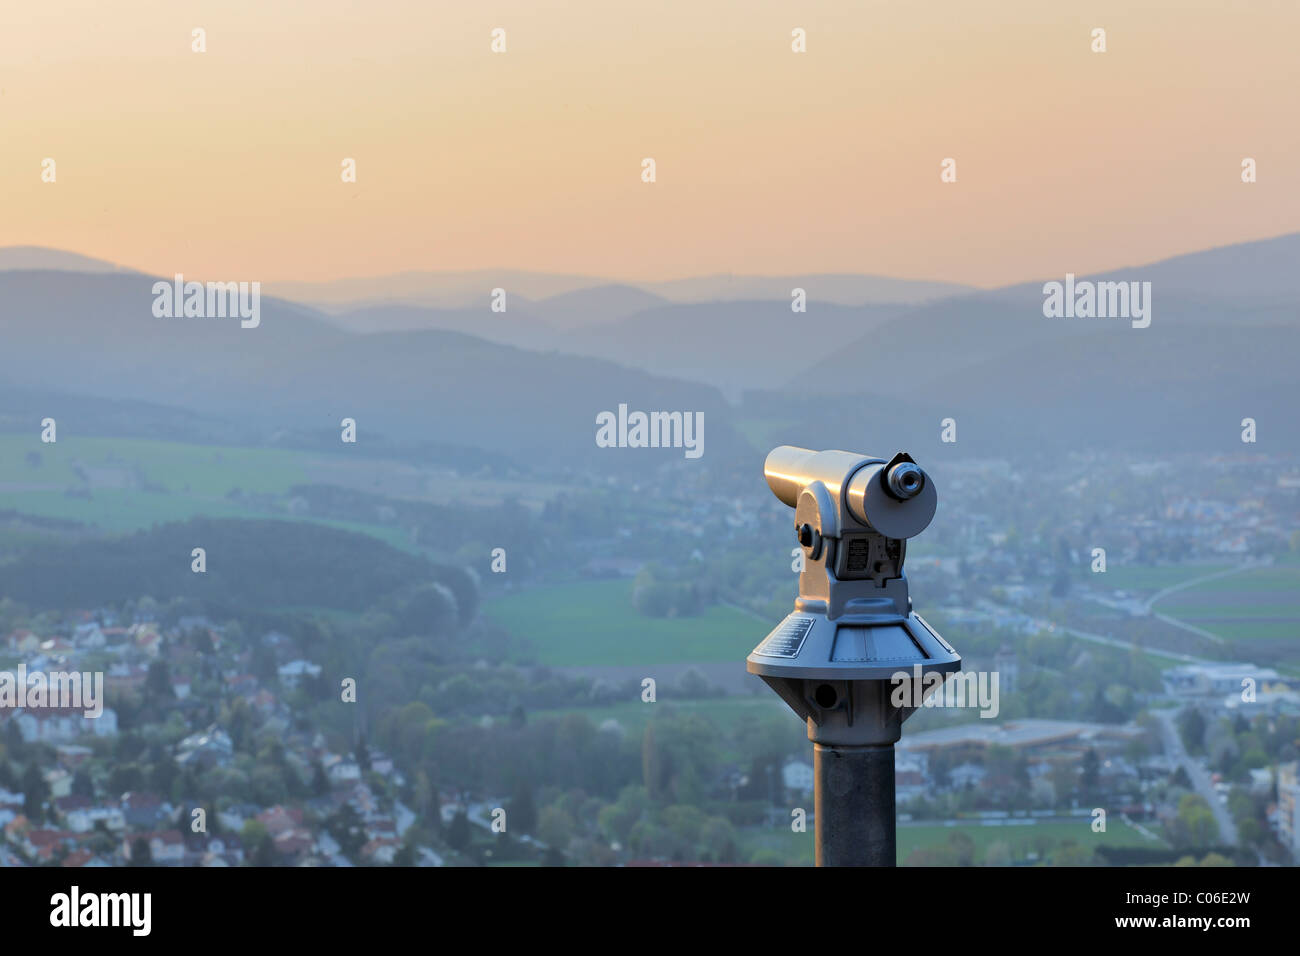 Coin-operated telescope overlooking Berndorf, Guglzipf lookout, Triestingtal valley, Lower Austria, Austria, Europe - Stock Image